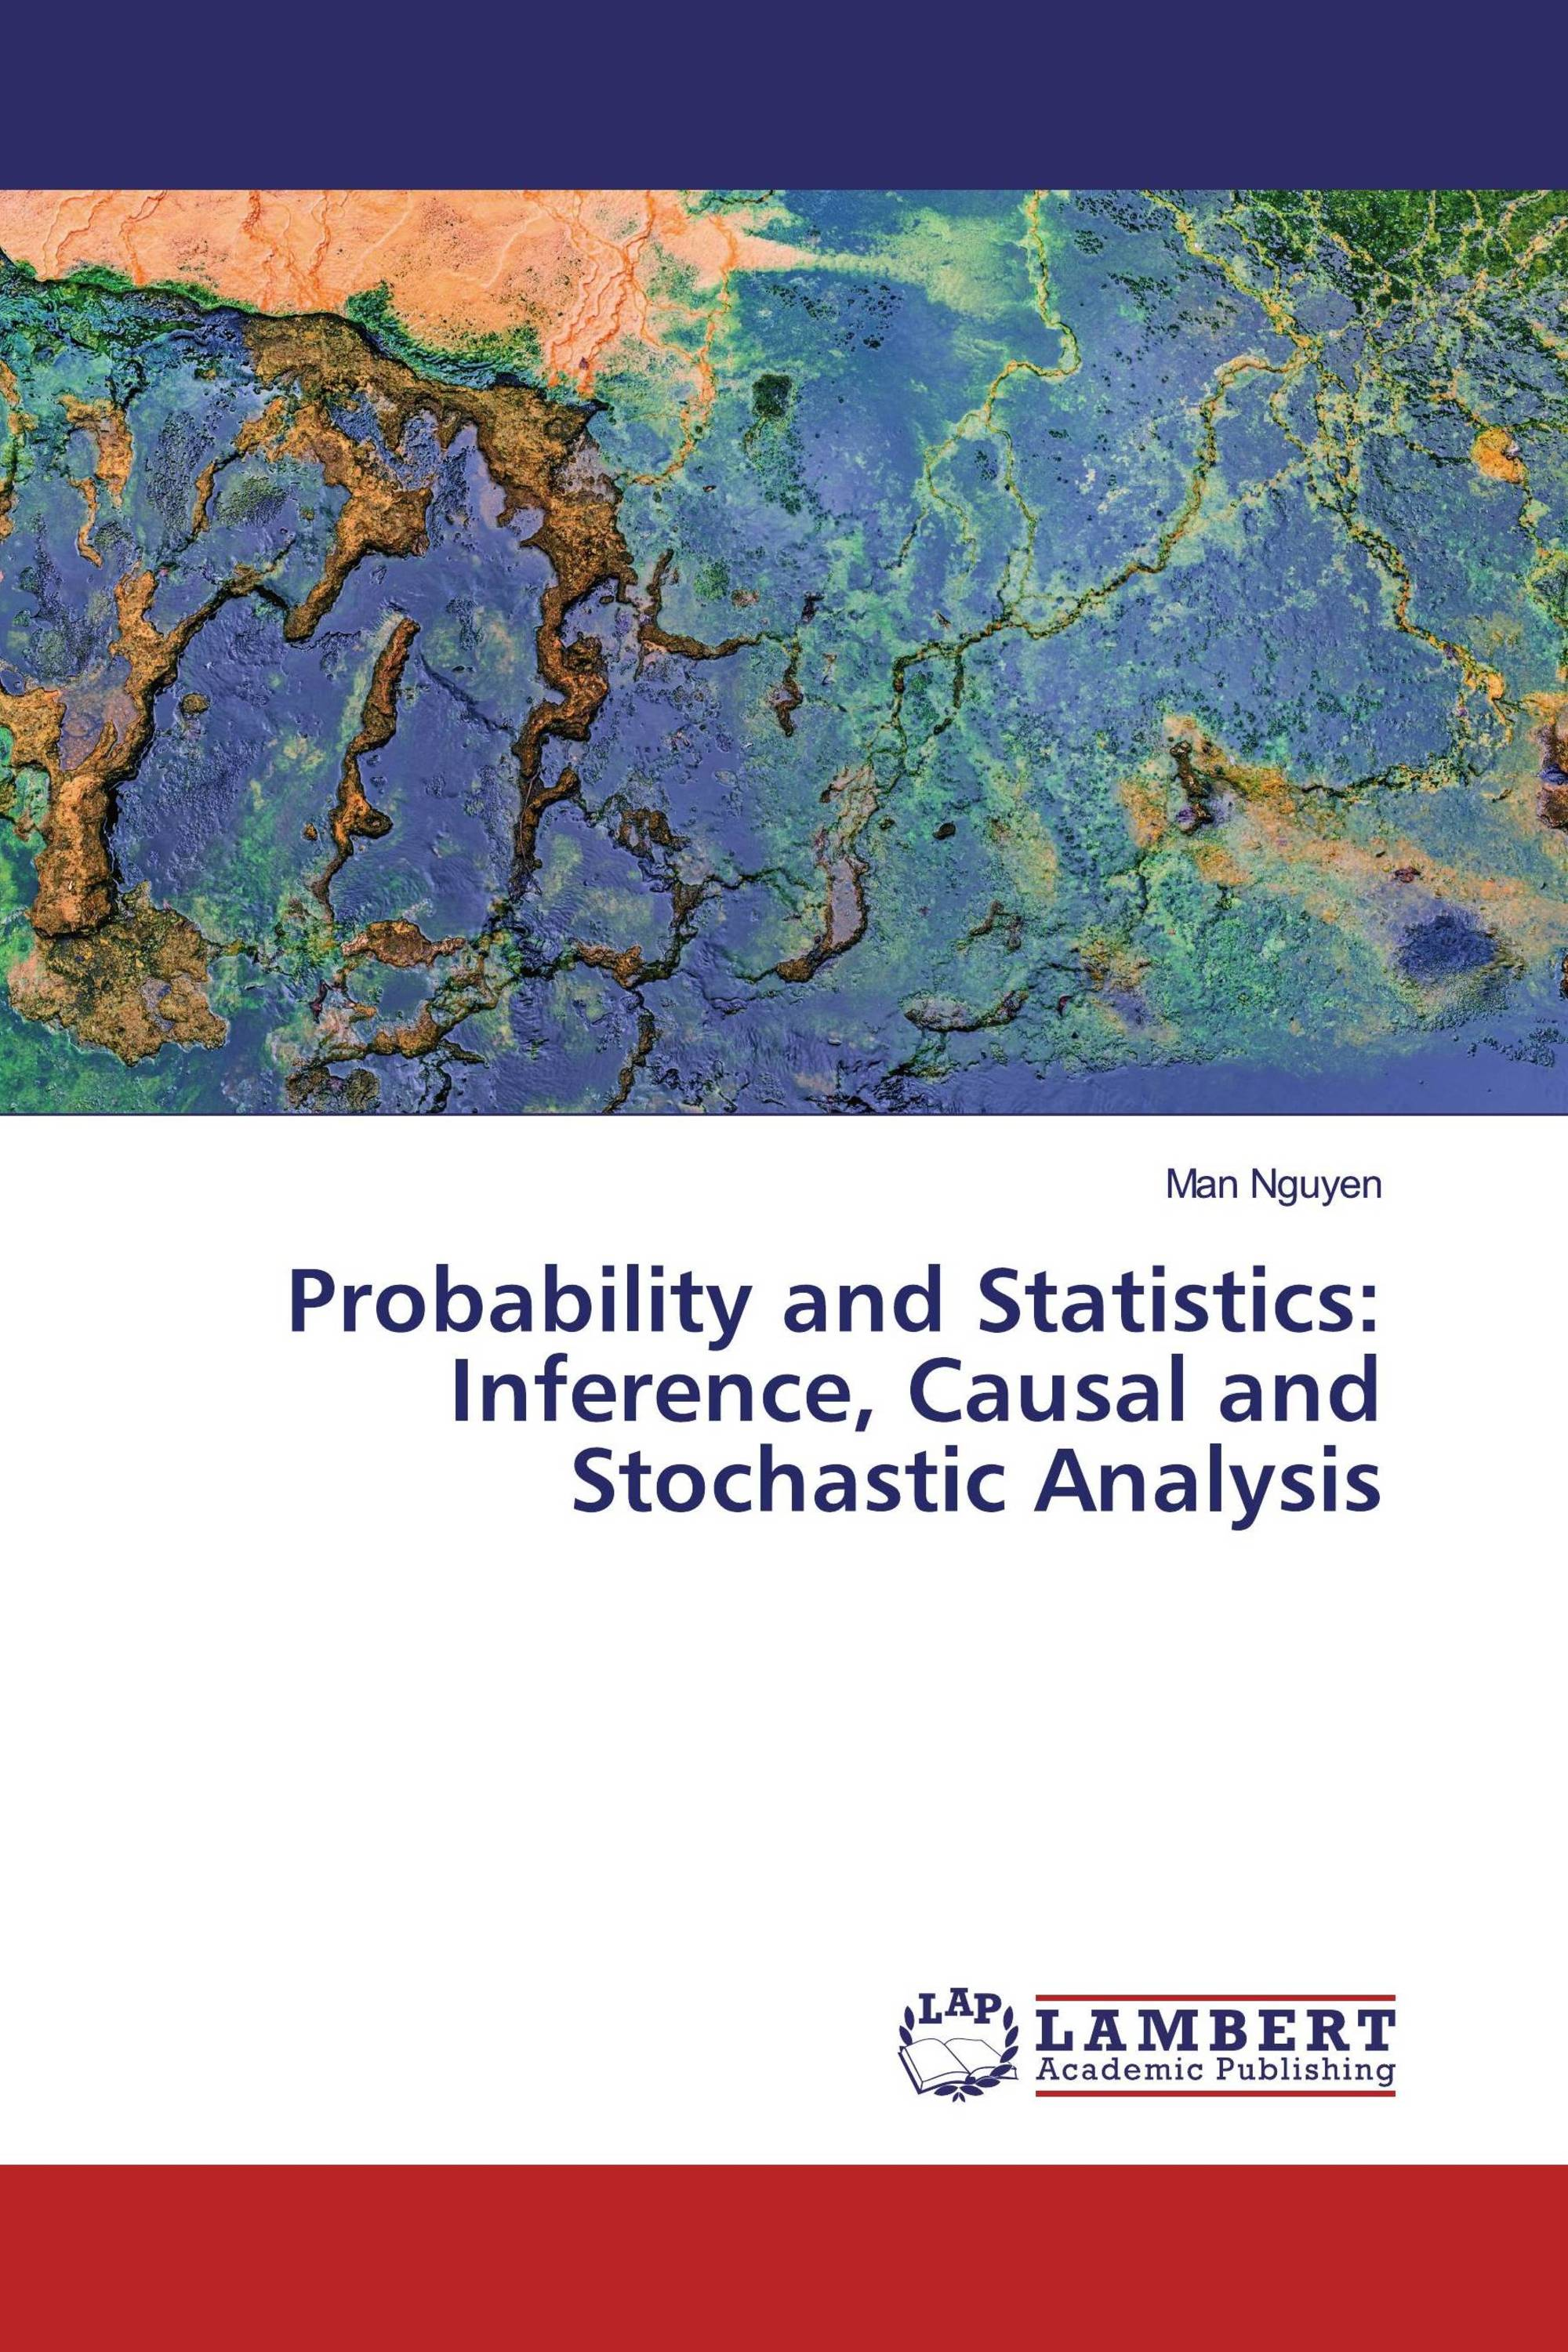 Probability and Statistics: Inference, Causal and Stochastic Analysis